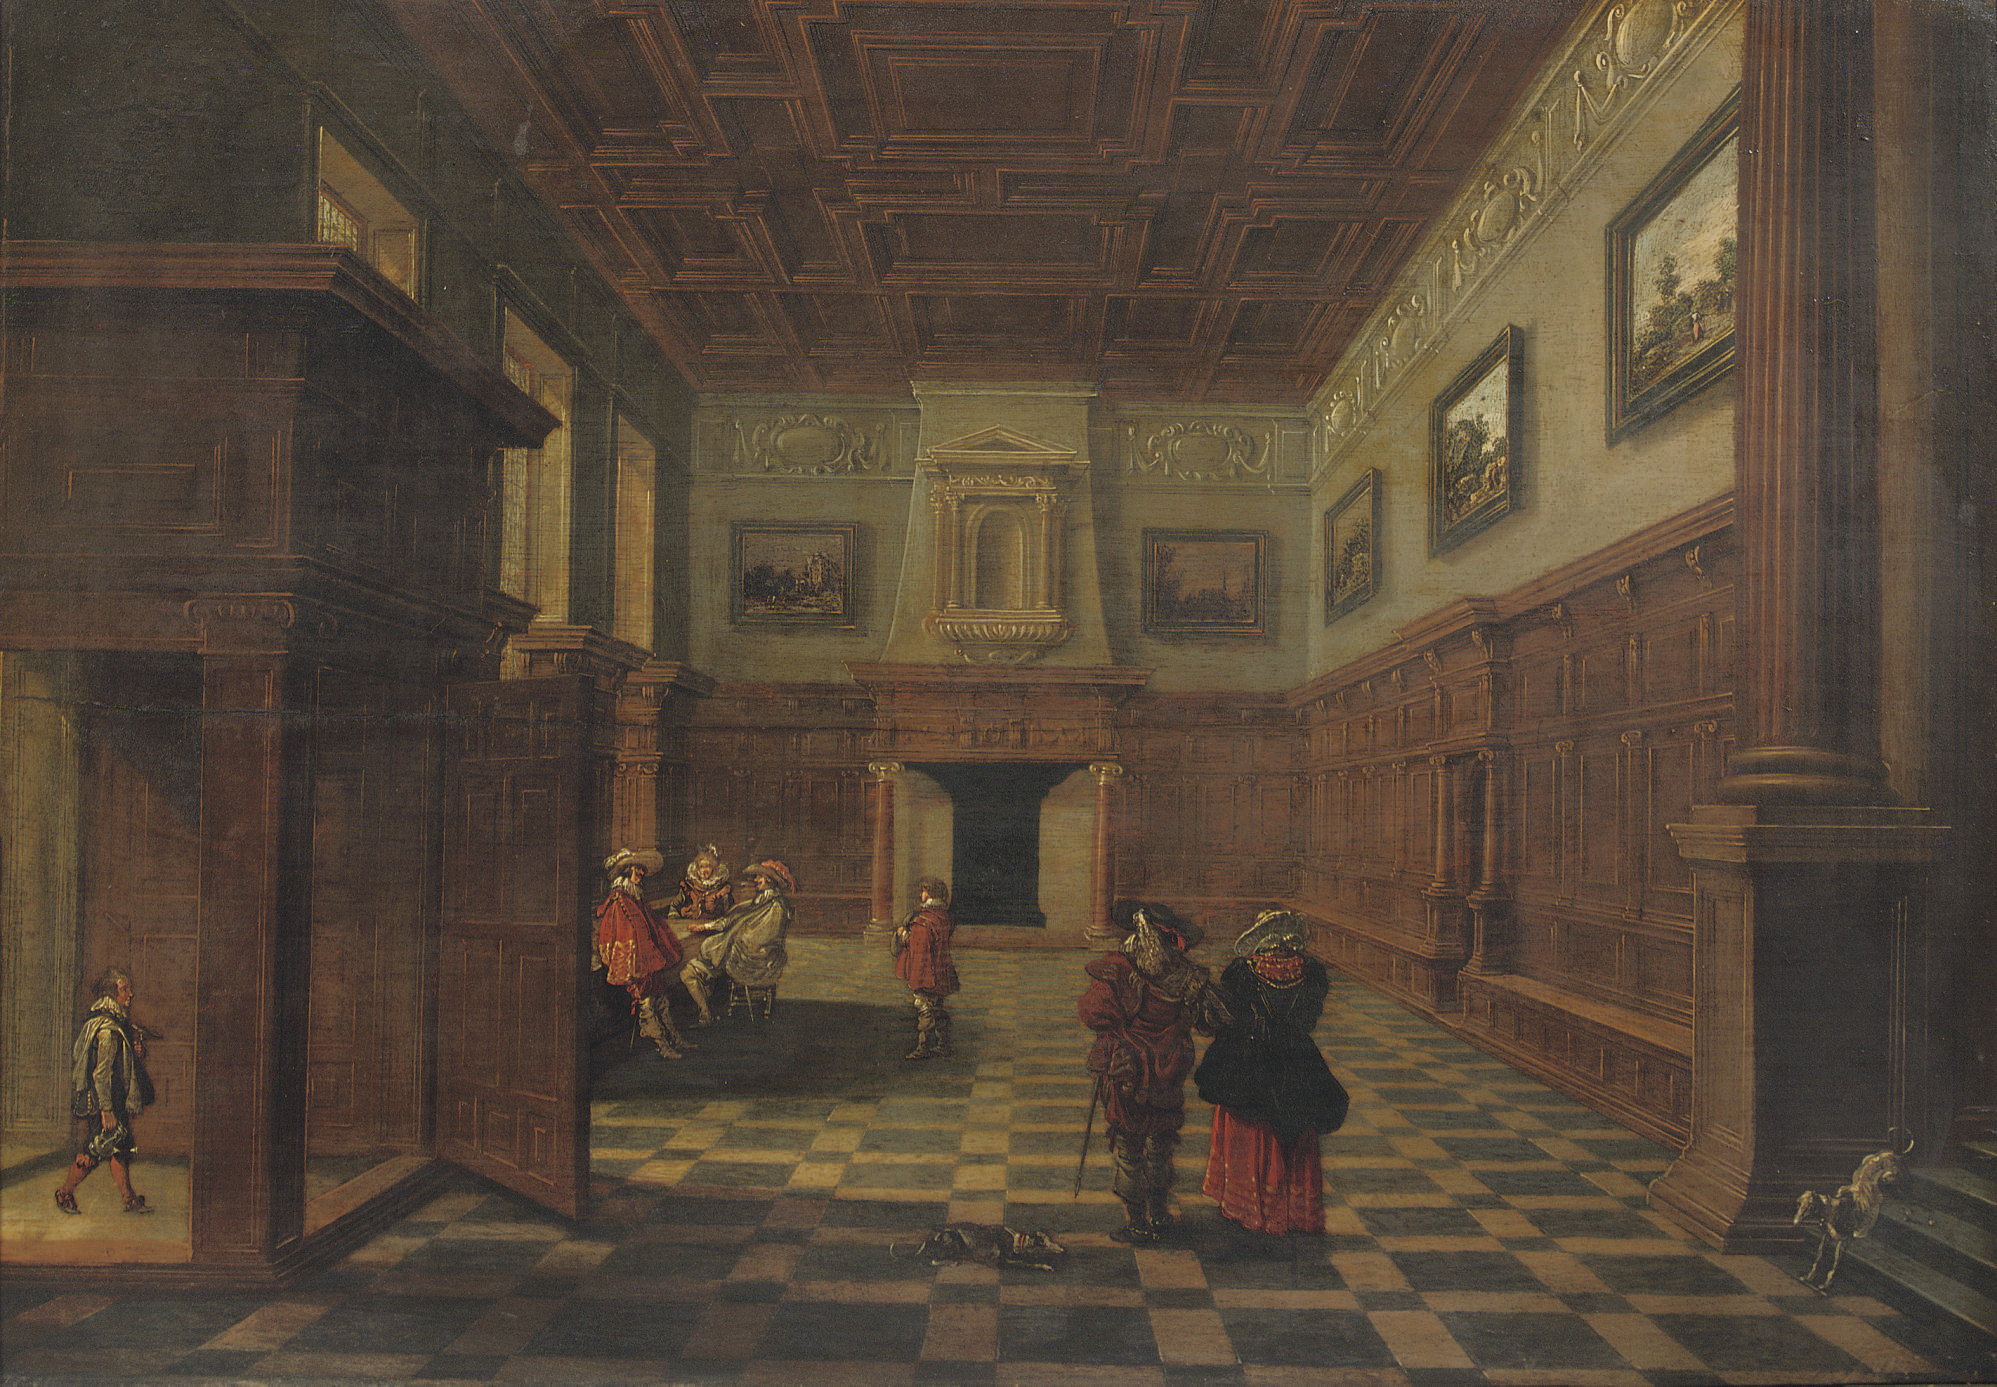 An interior of a palace with figures conversing